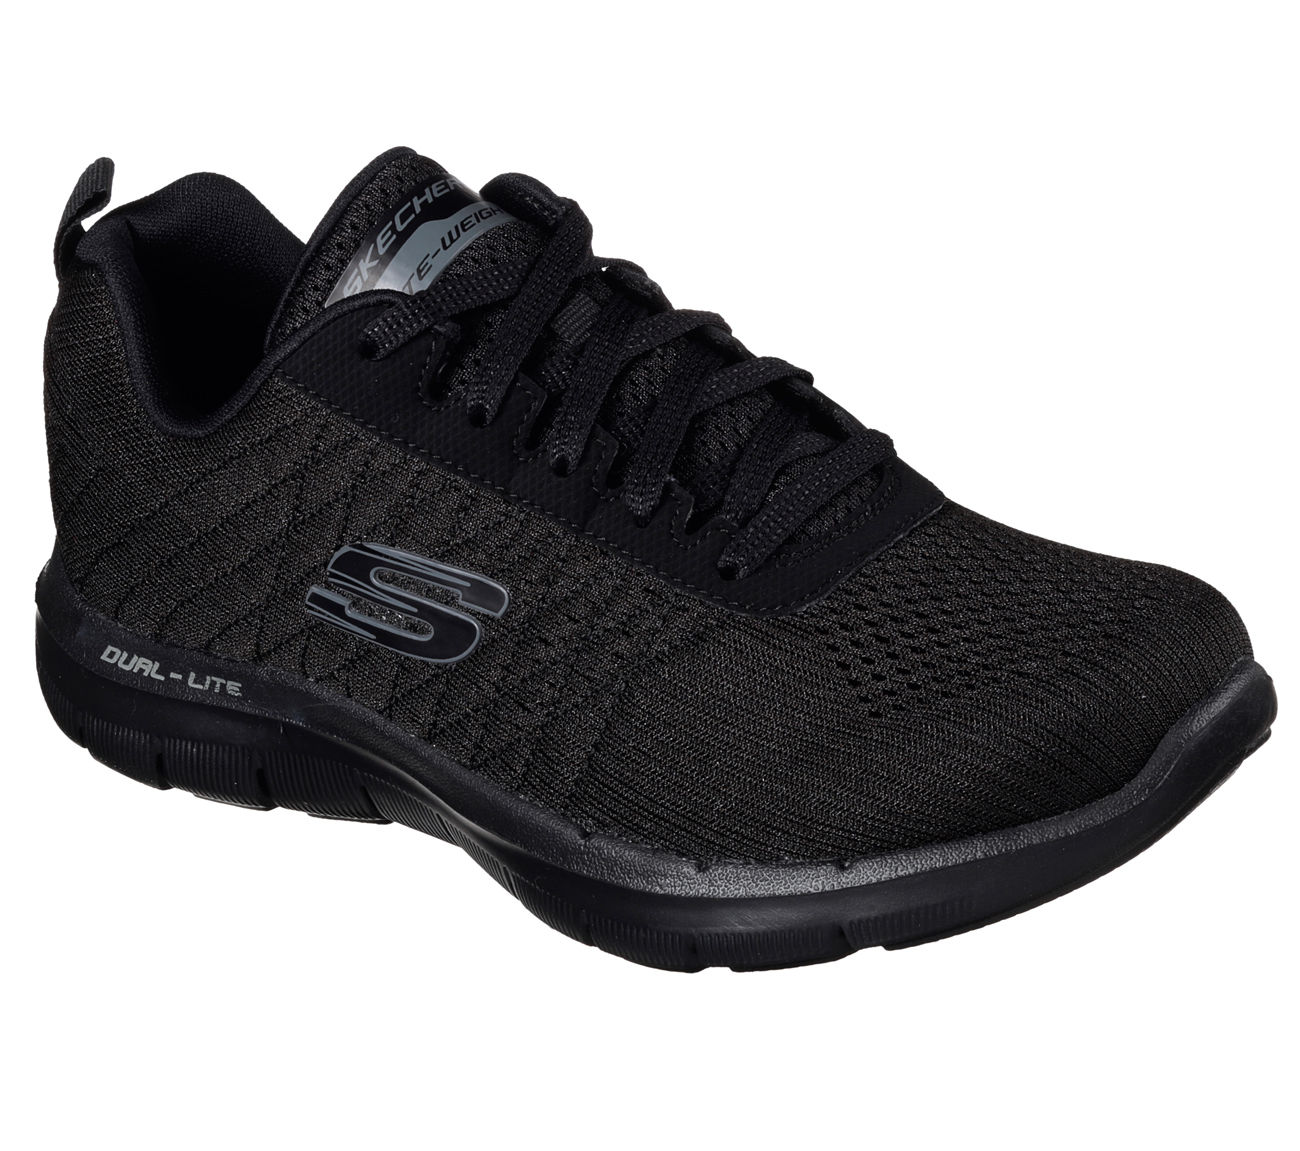 Skechers Workwear Shoes Uk